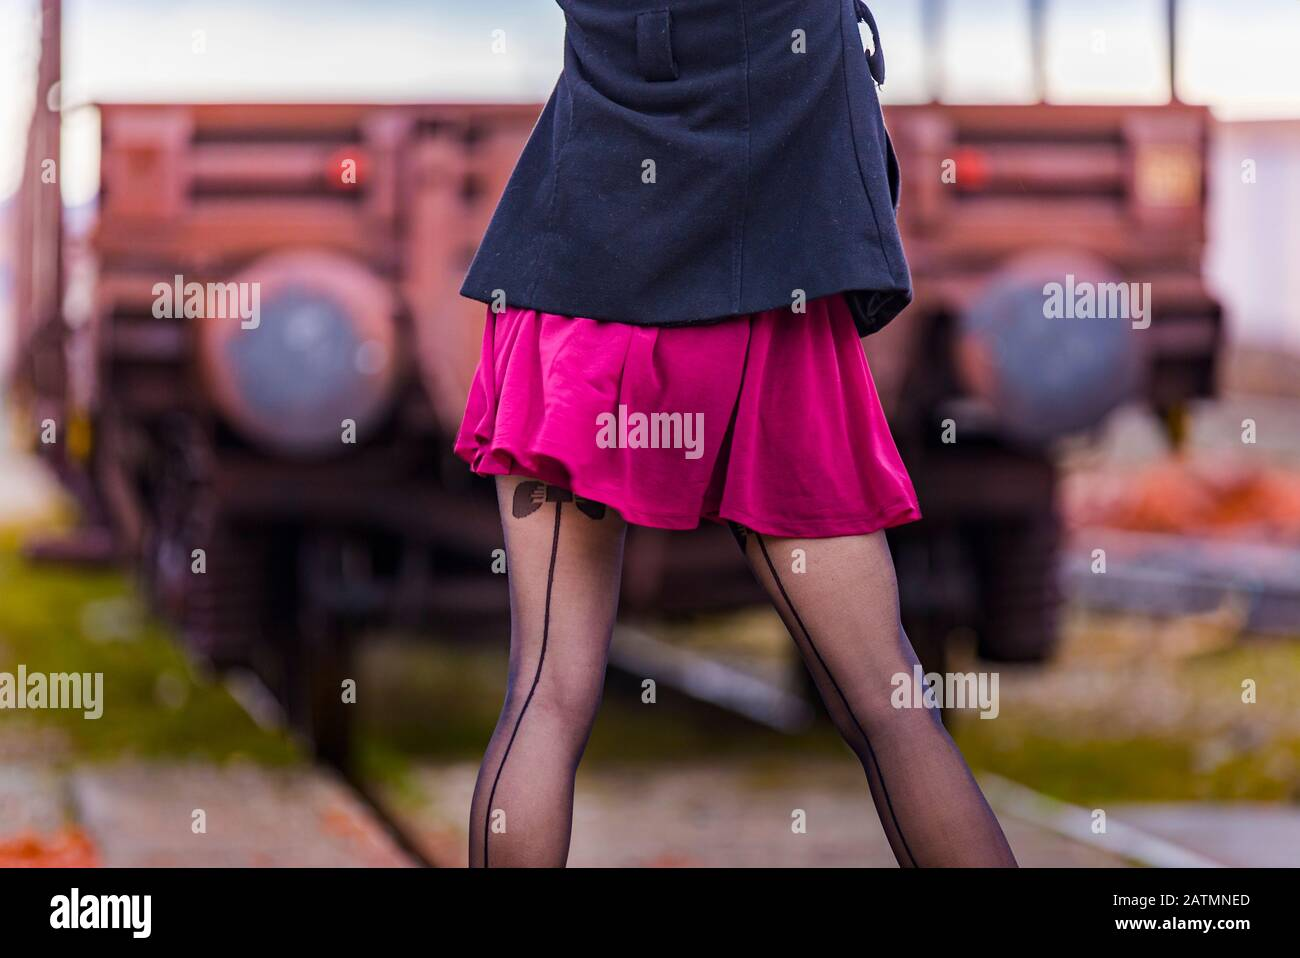 Teen girl twisted seamed stockings view from back rear behind rearview cropped crop Stock Photo